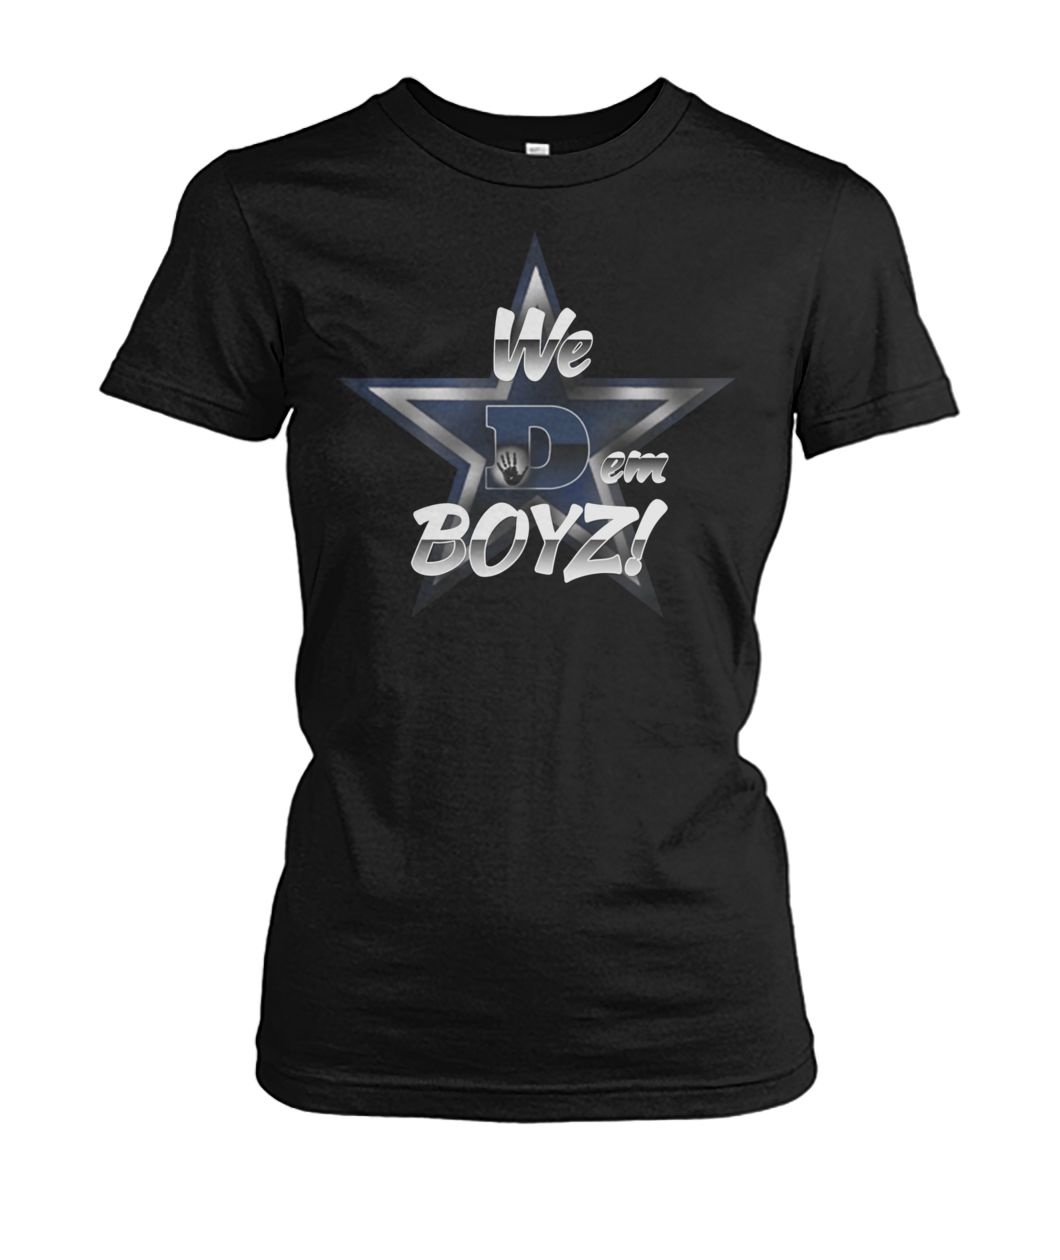 Dallas cowboys we dem boyz women's crew tee